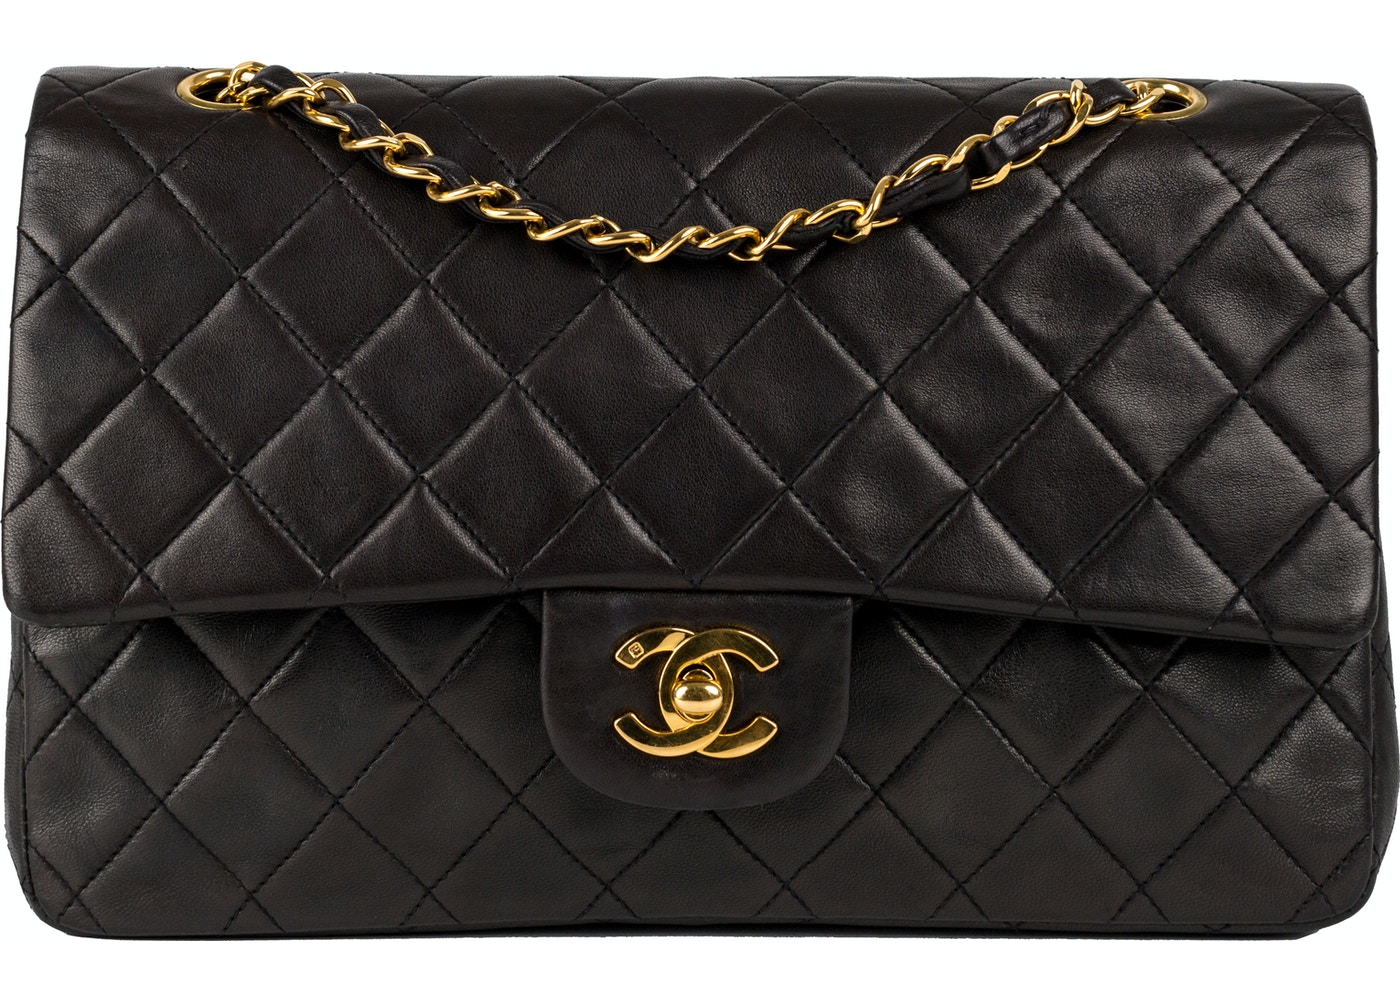 542cc7410422 Chanel Vintage Classic Double Flap Quilted Medium Black